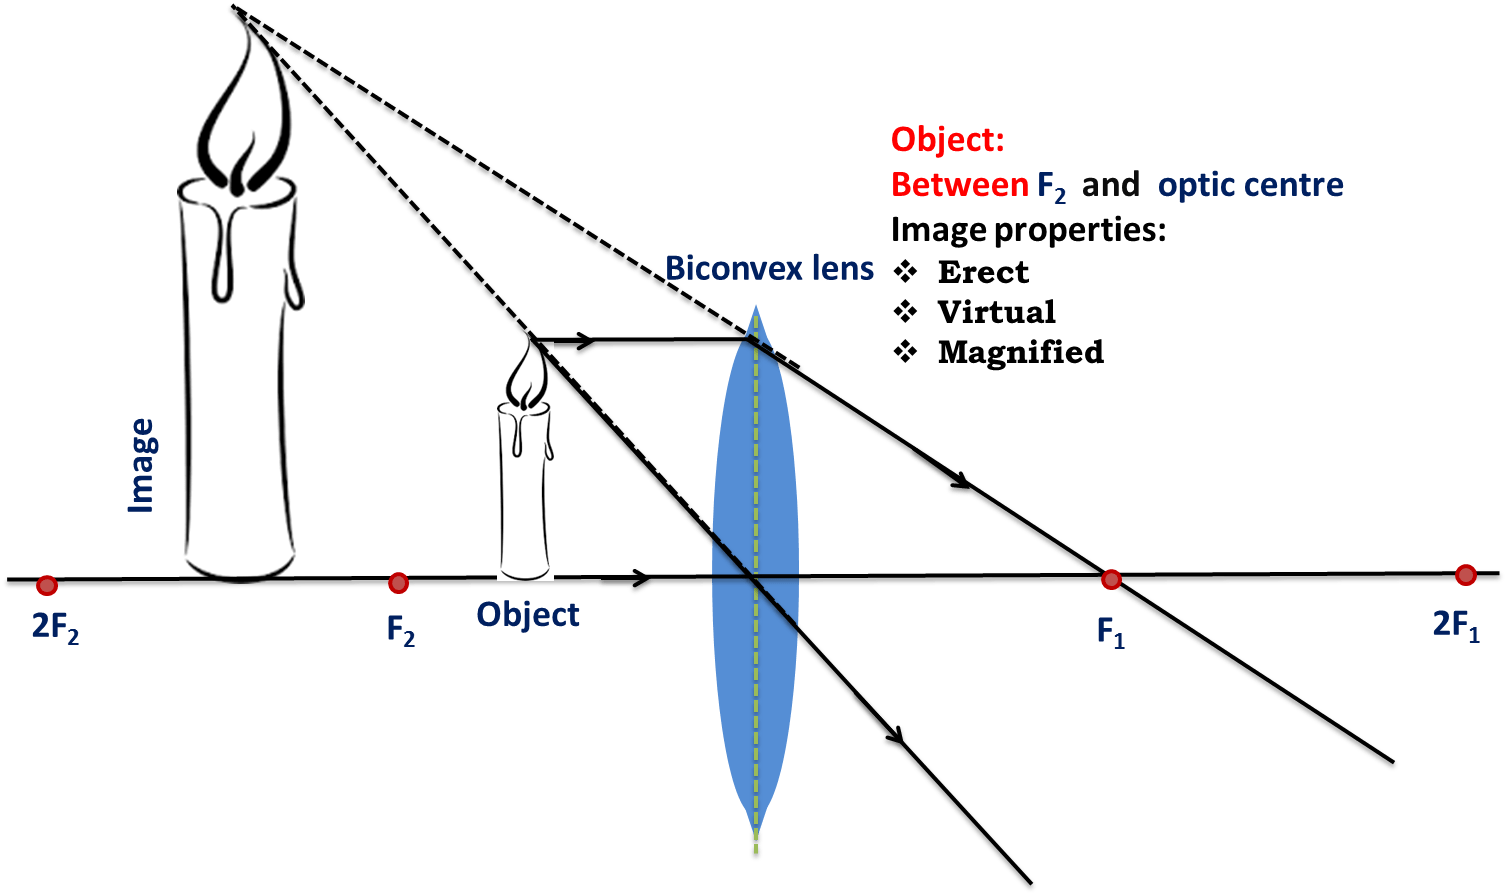 hight resolution of file convex lens object between focal point and optical centre png